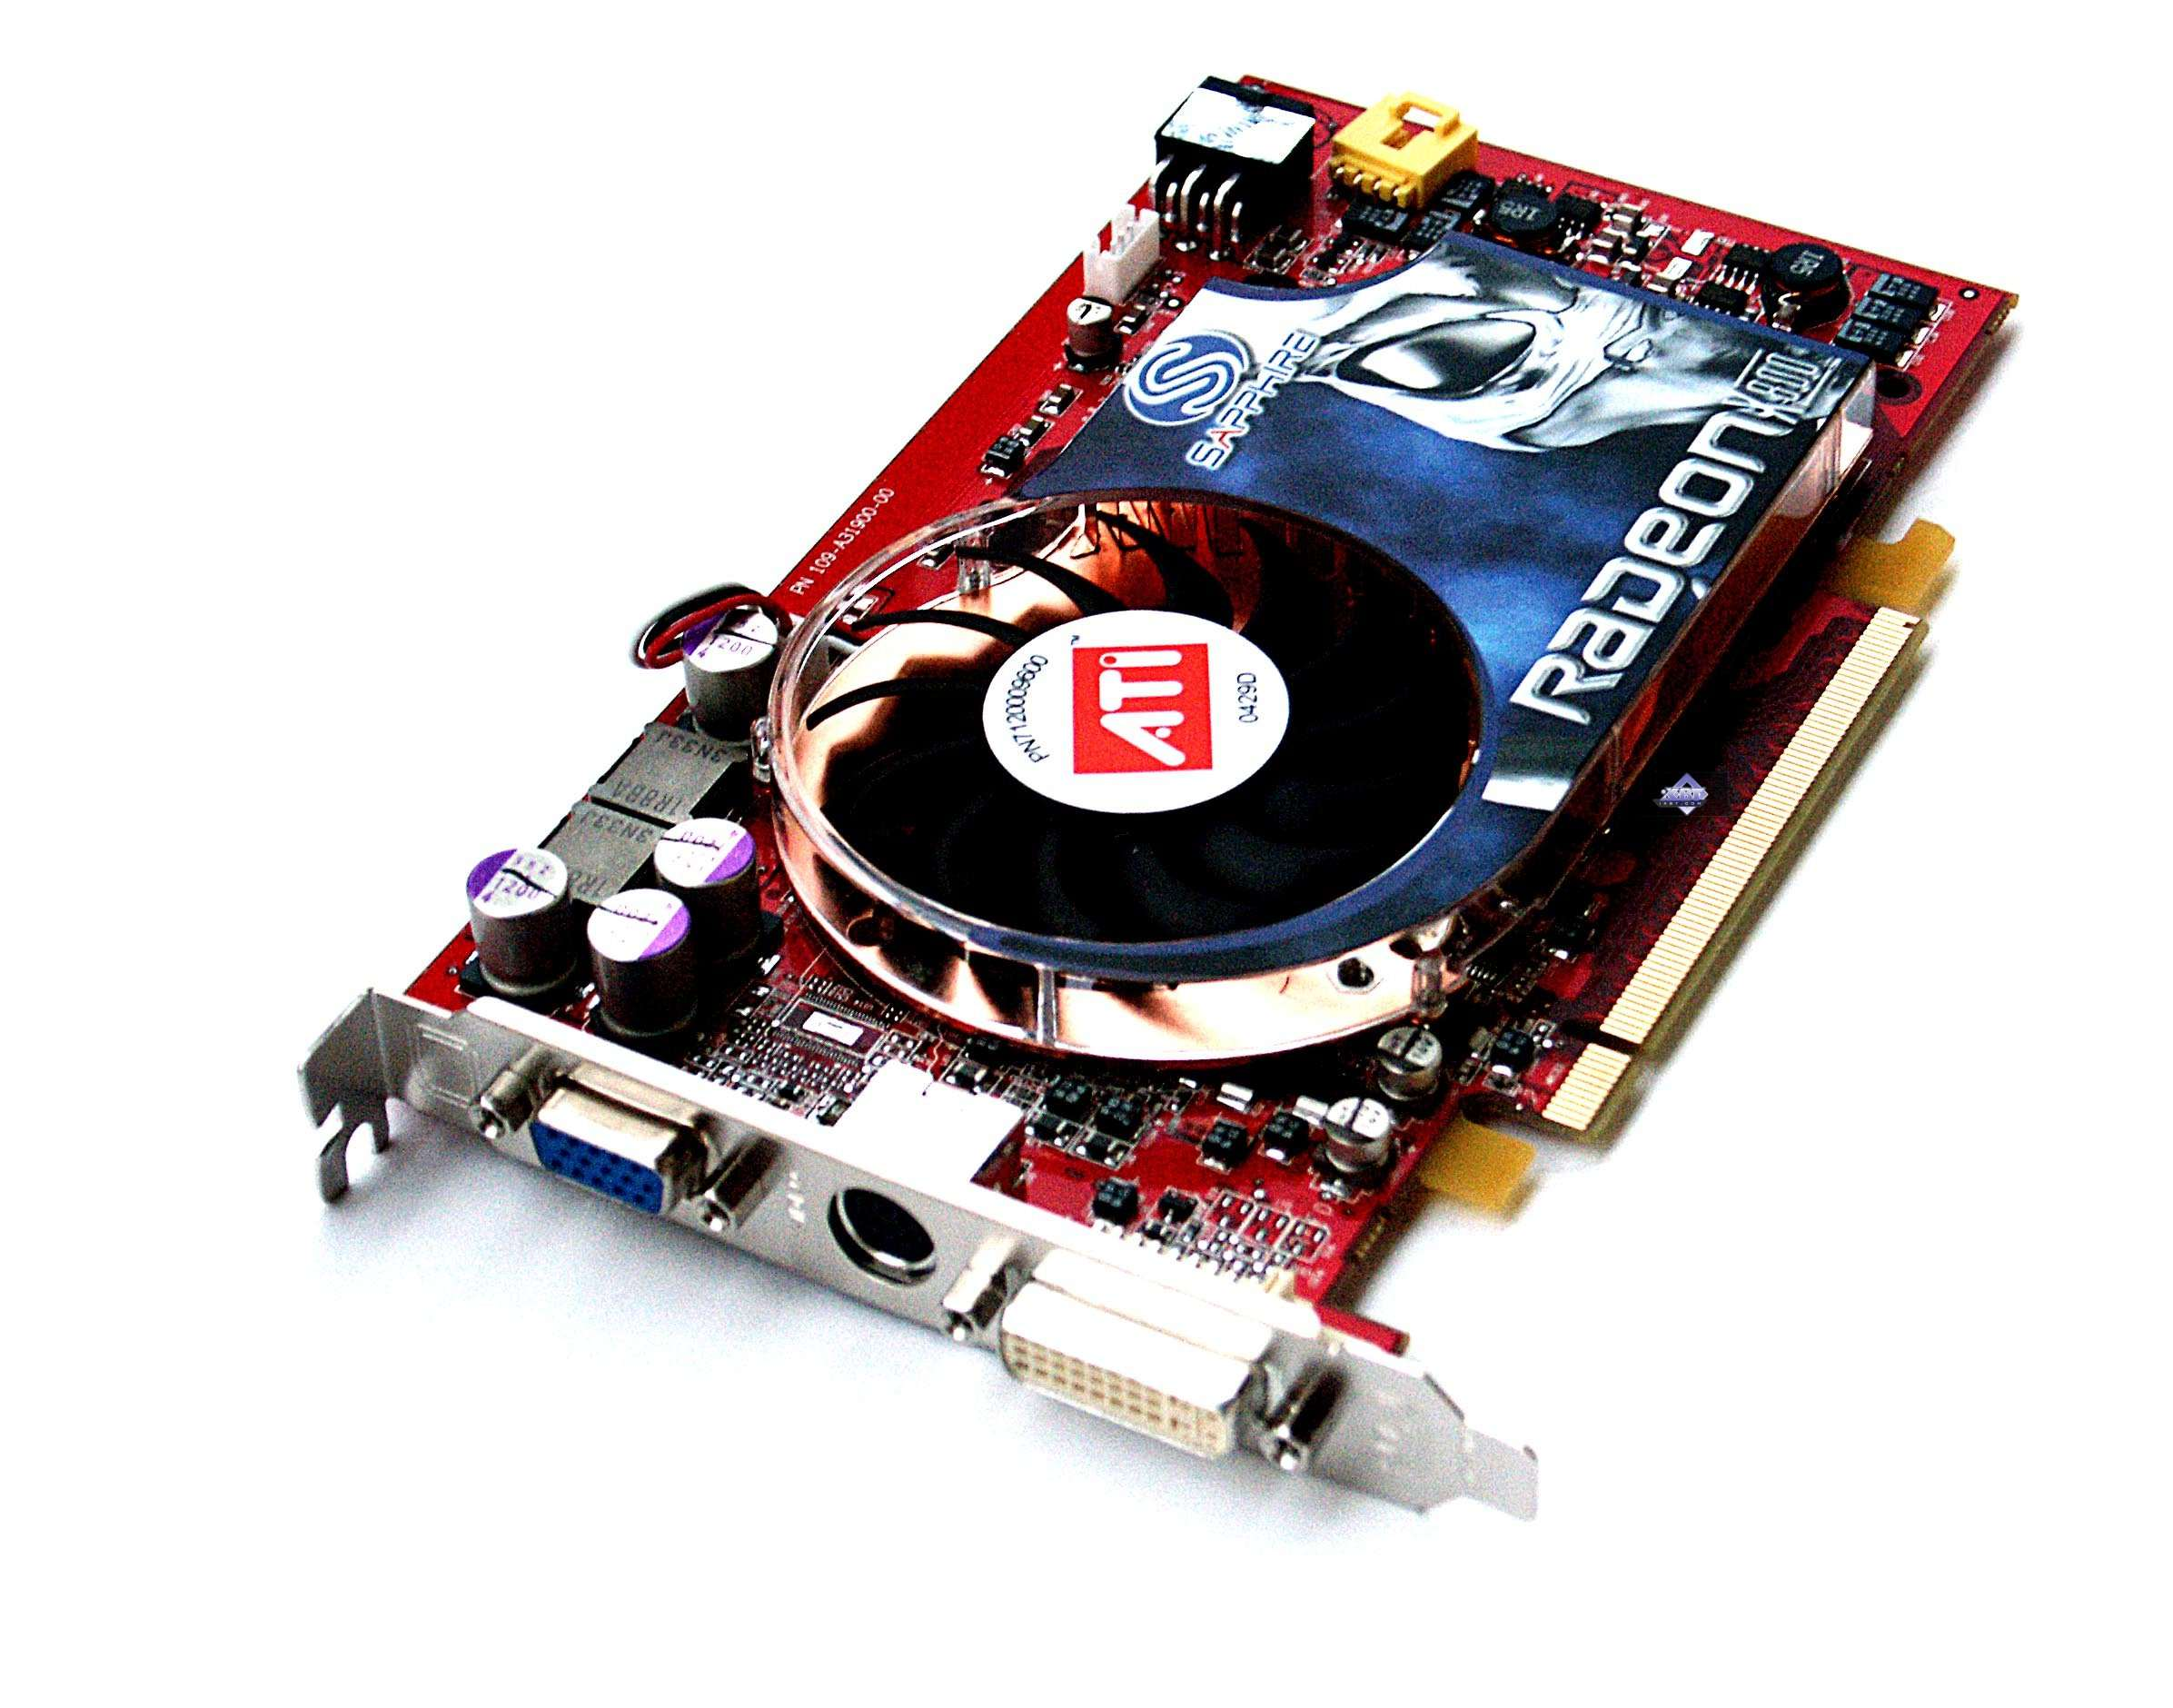 AMD RADEON X800 XT GRAPHICS DRIVERS FOR WINDOWS 8